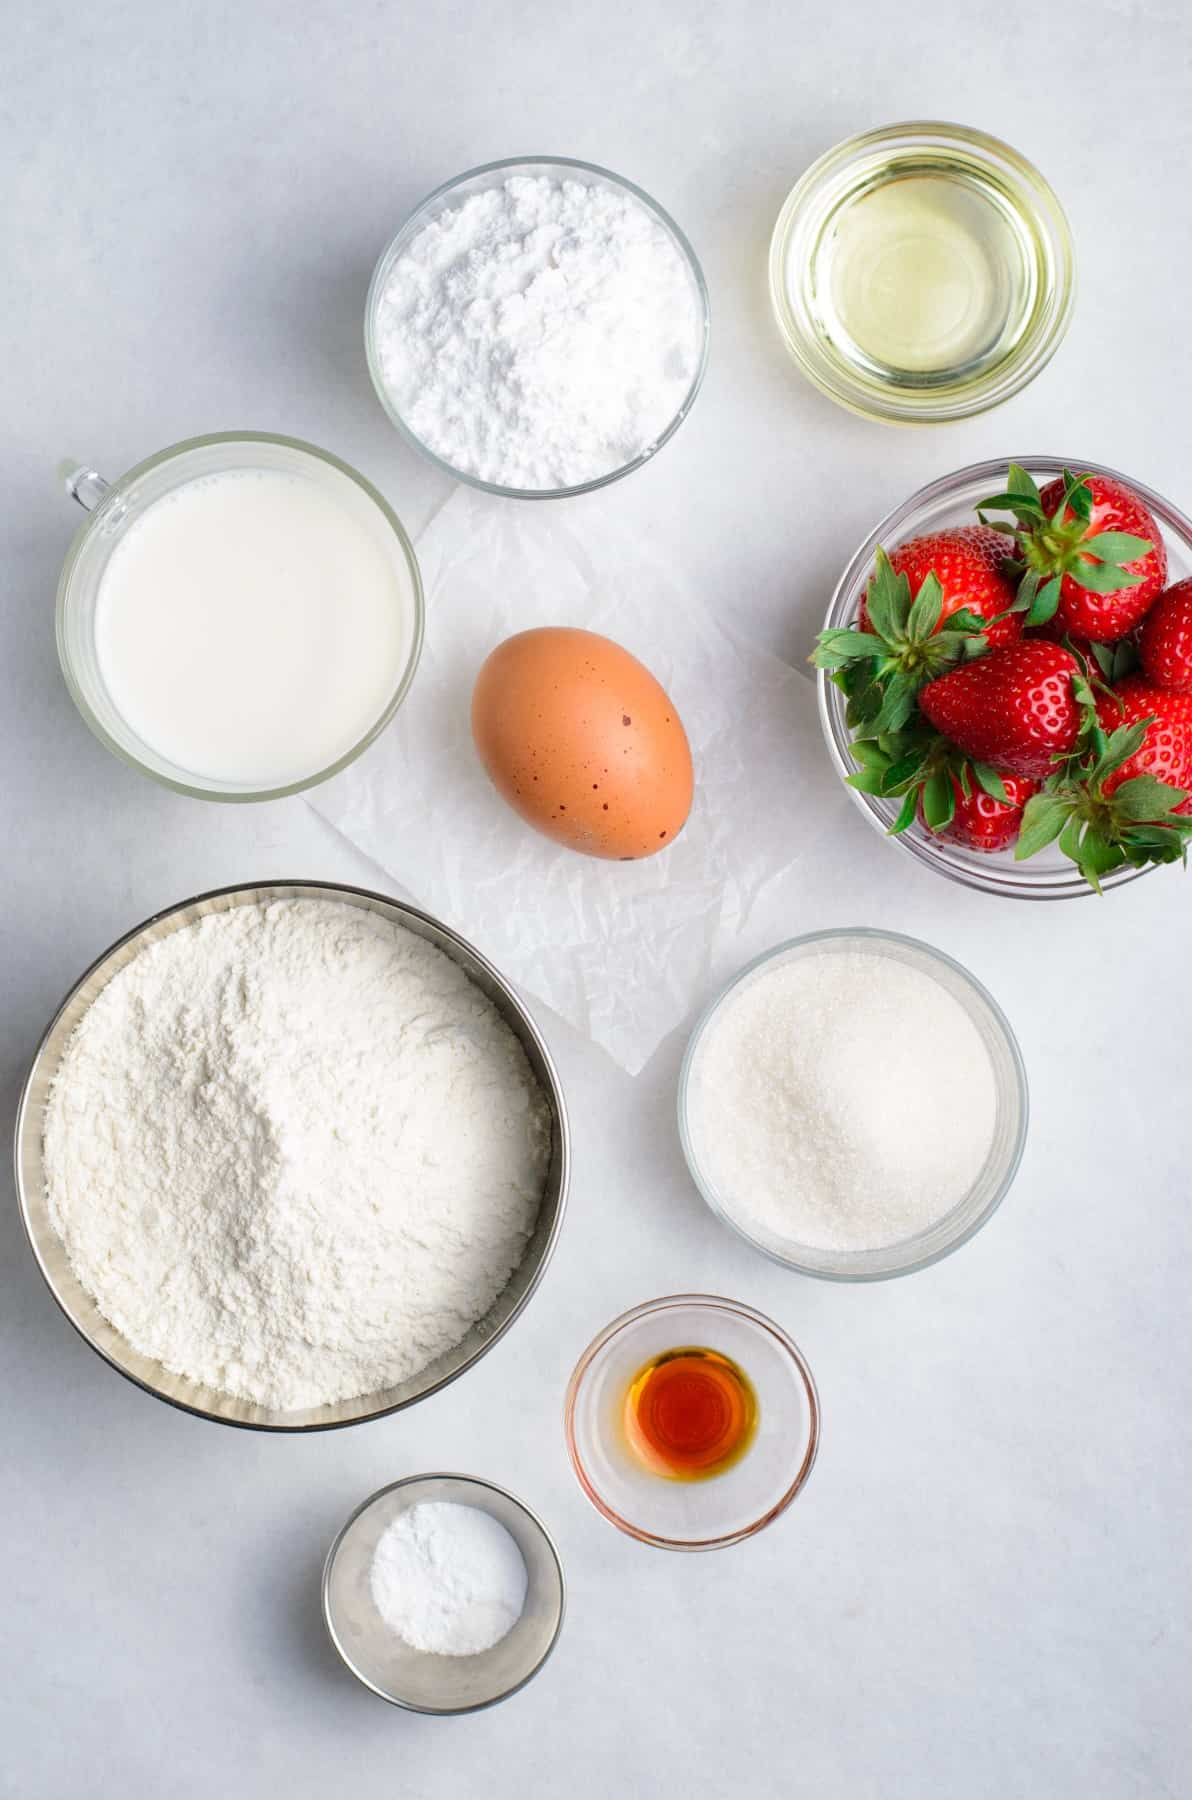 Ingredients for Baked Strawberry Donuts